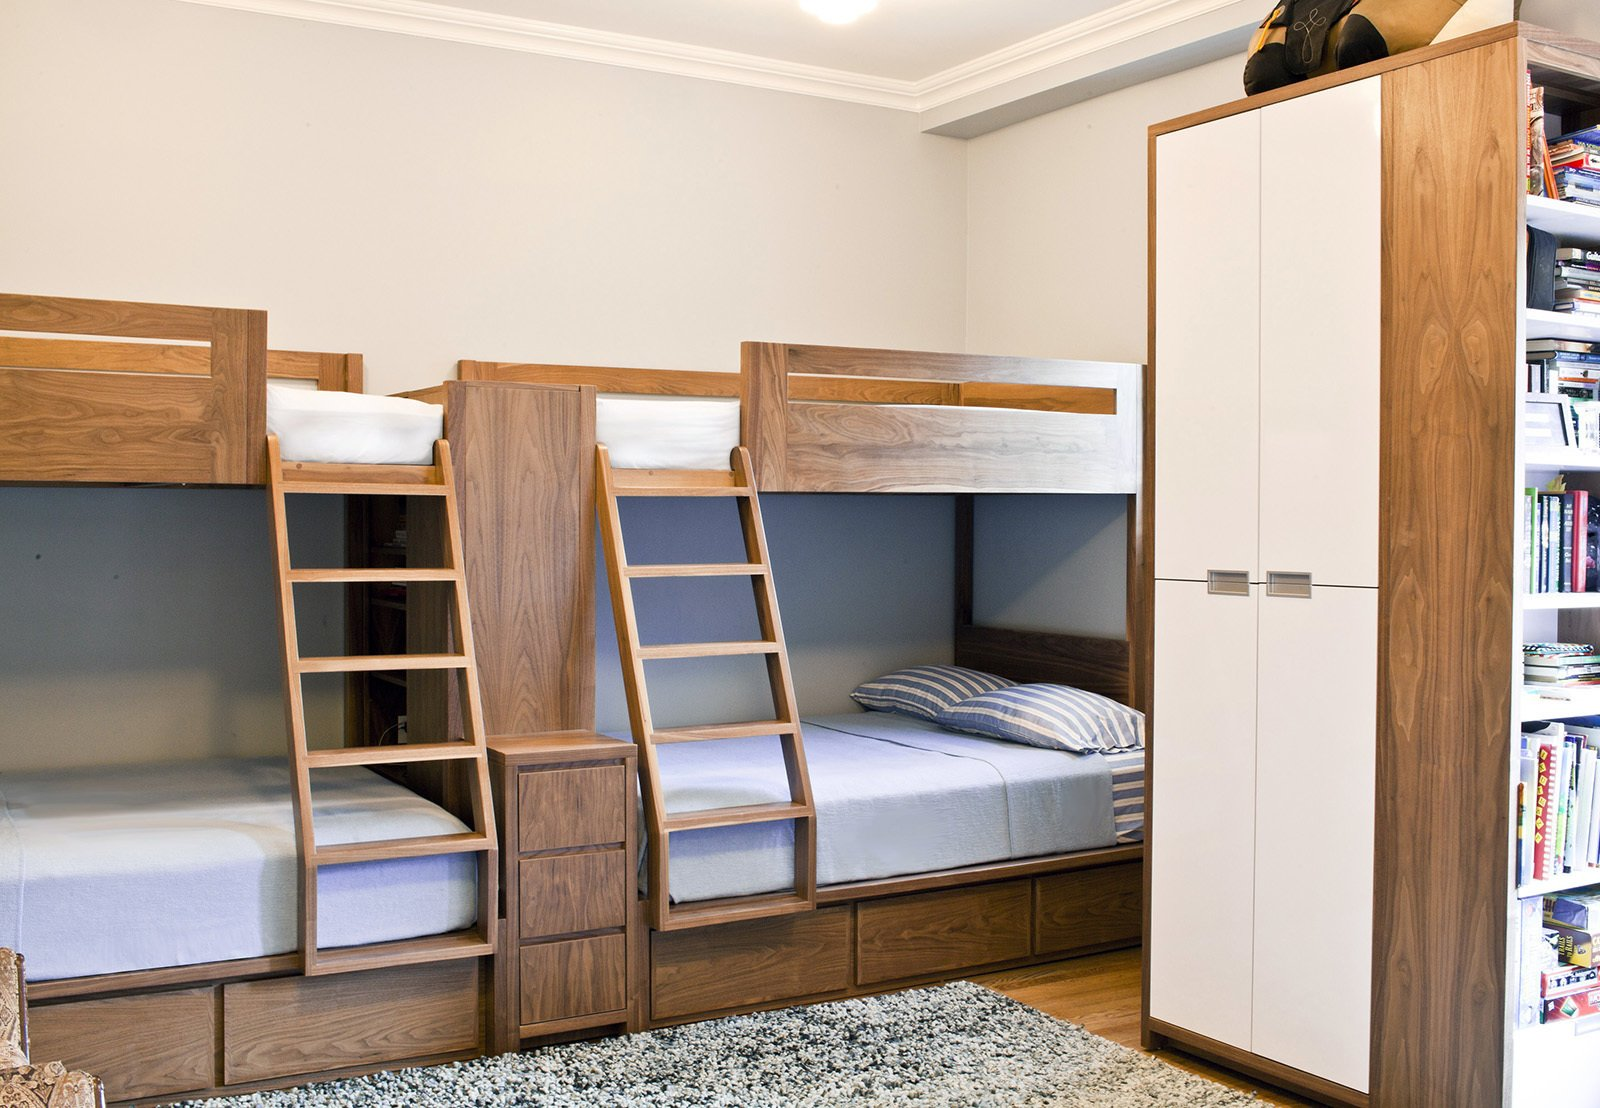 A Modern Kids Room With Custom Bunk Beds Collection Of 3